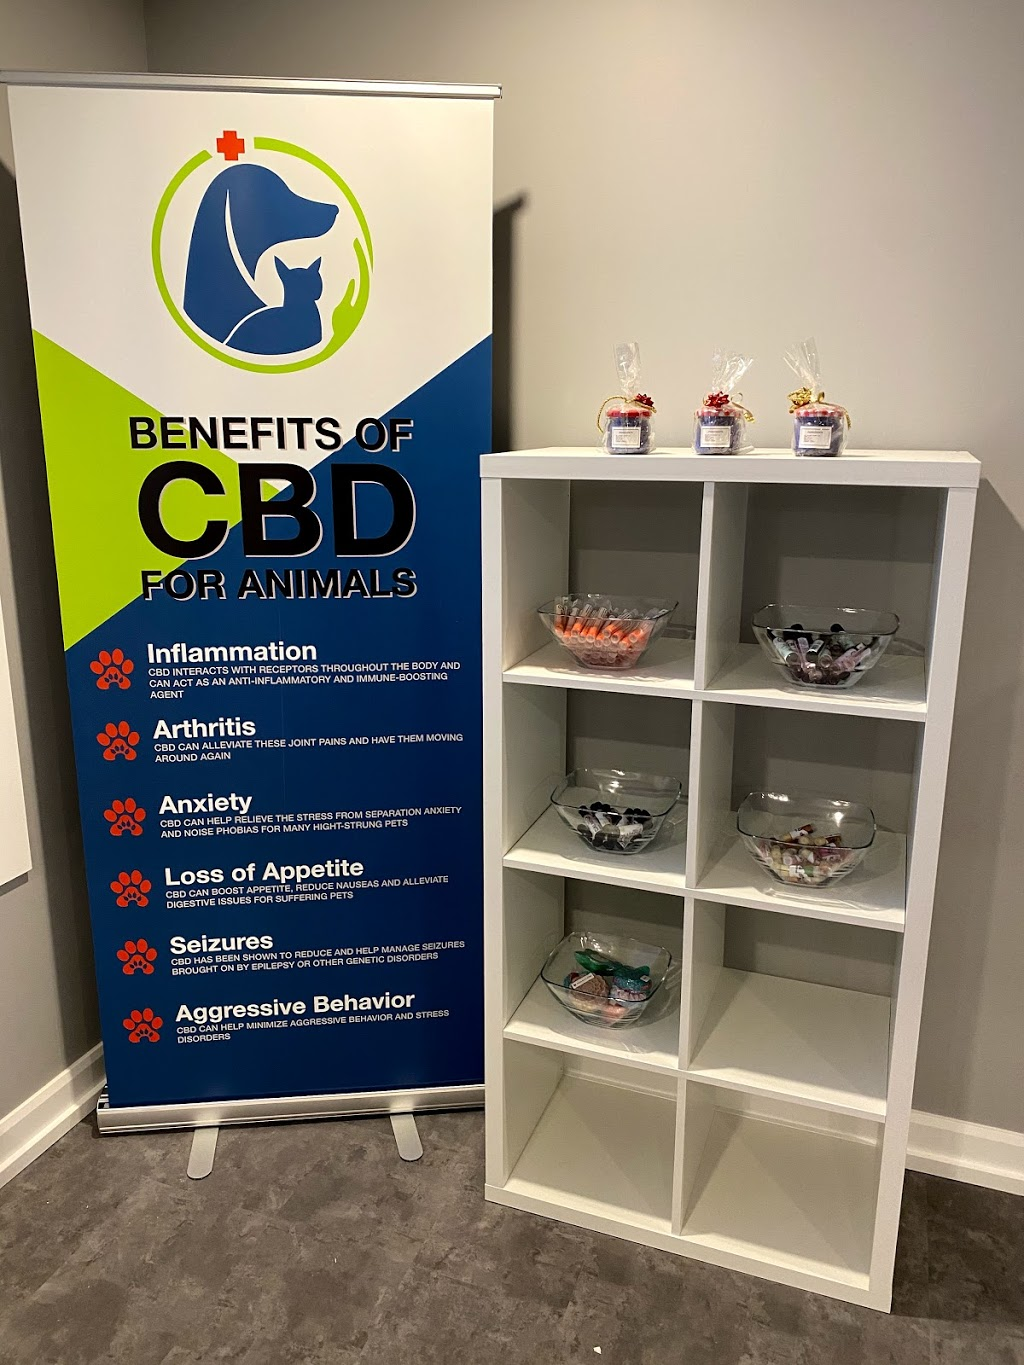 The CBD Shop | health | 145 Charing Cross St, Brantford, ON N3R 2J3, Canada | 5193044466 OR +1 519-304-4466